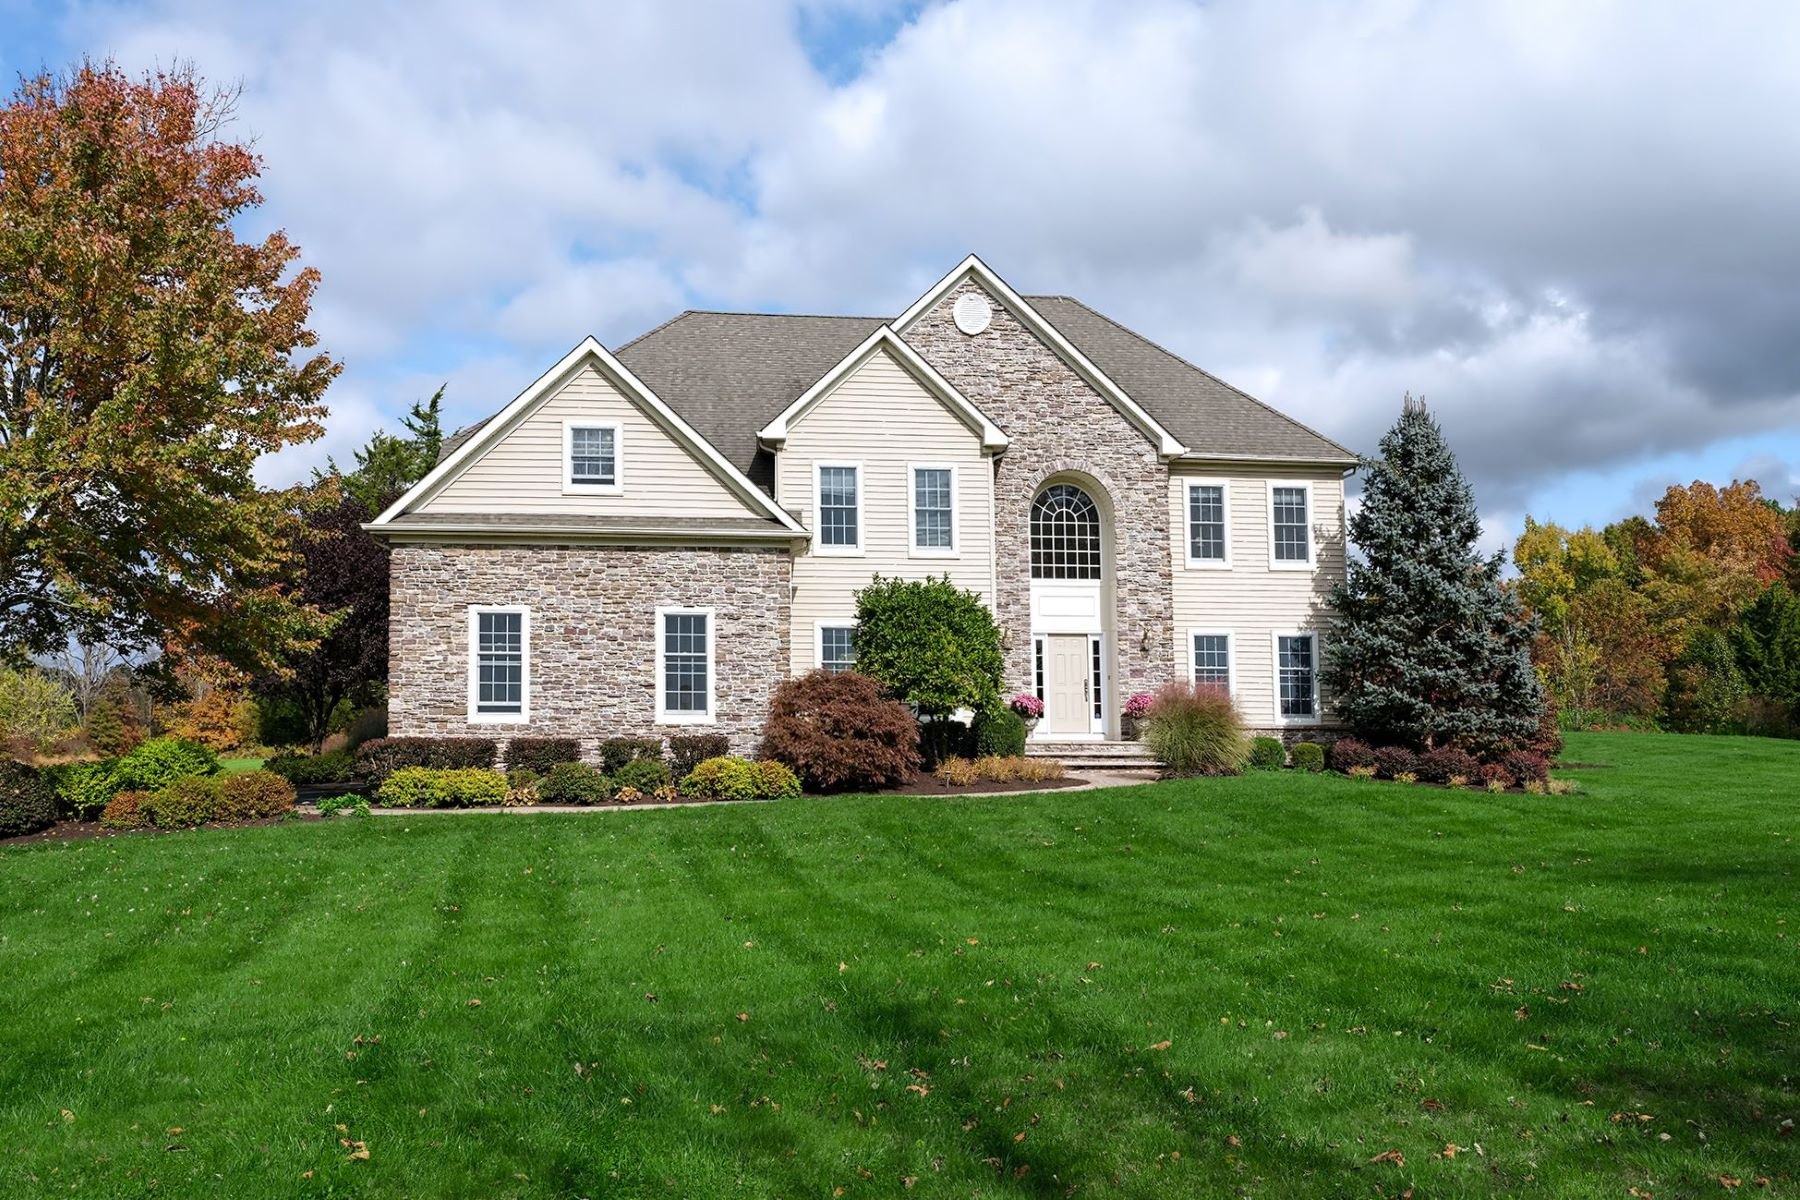 Single Family Homes for Sale at Sophisticated Custom-Built Home Backing to Parkland 56 Gulick Road, Ringoes, New Jersey 08551 United States